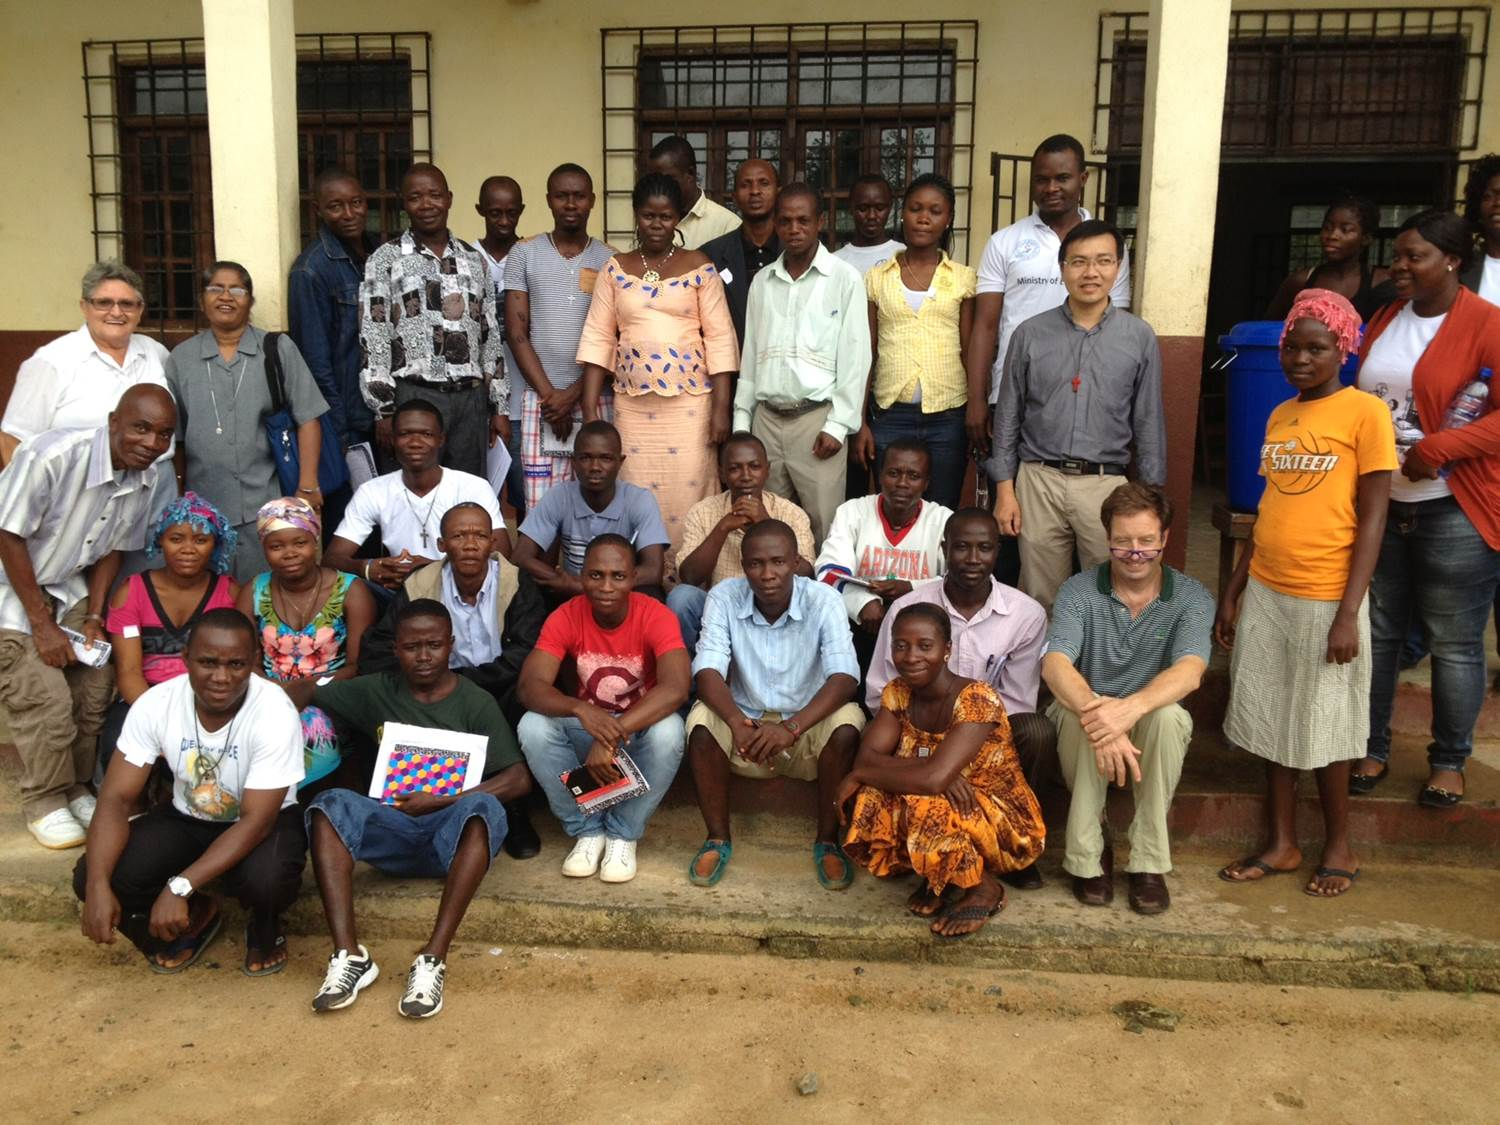 Dr. Flanigan with colleagues in Liberia.